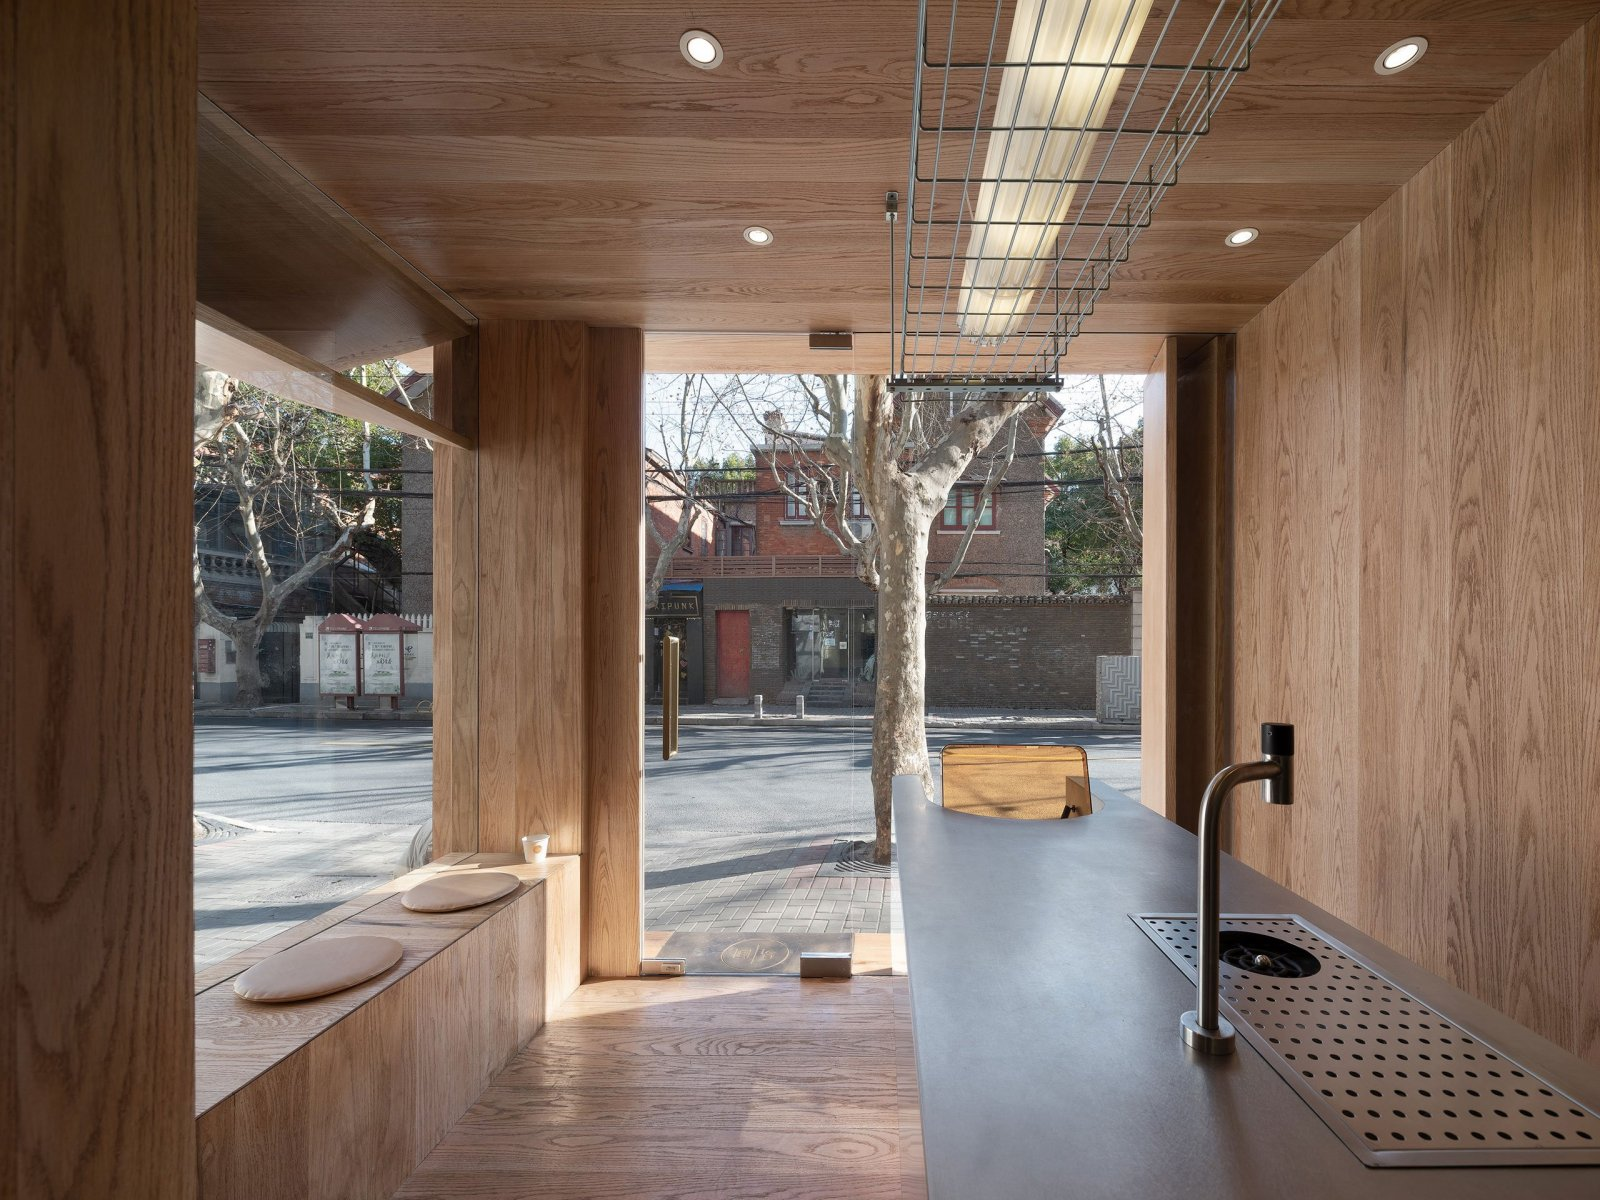 A-Cafe-in-Shanghai-Combines-a-Stripped-Down-Aesthetic-19